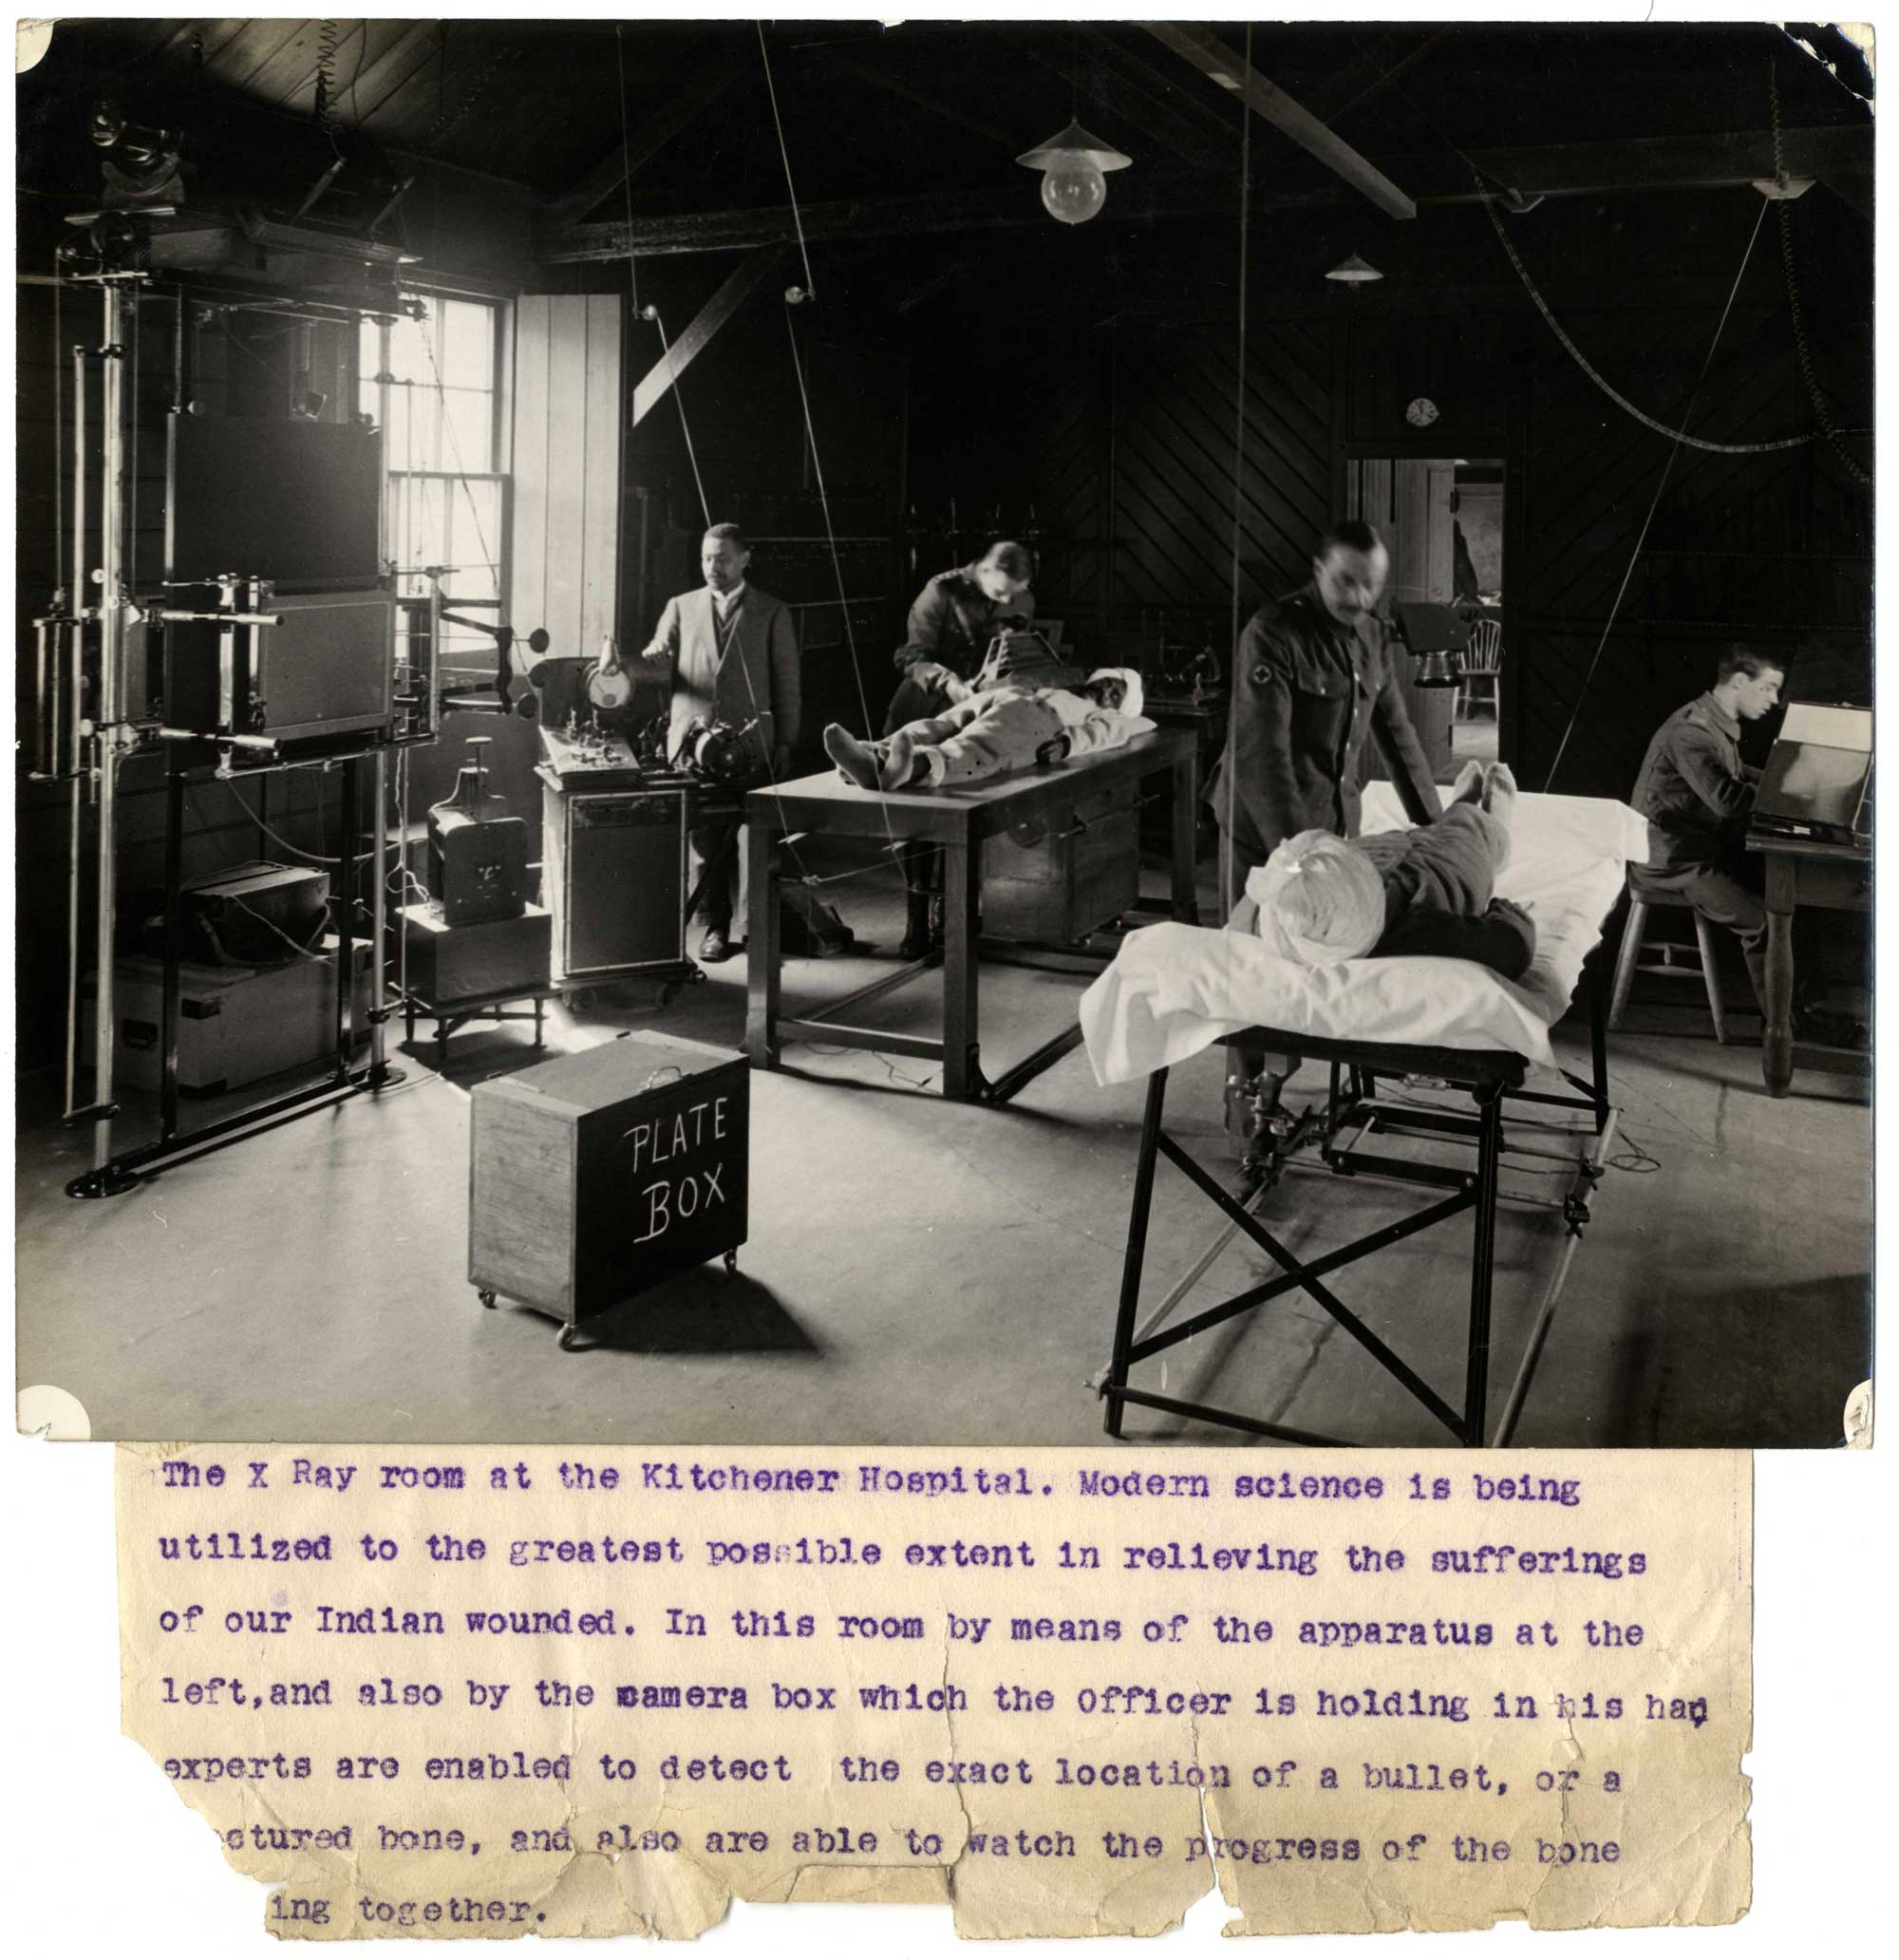 Two wounded Indian soldiers are given x-rays at the Kitchener Indian Hospital in Brighton, 1915.